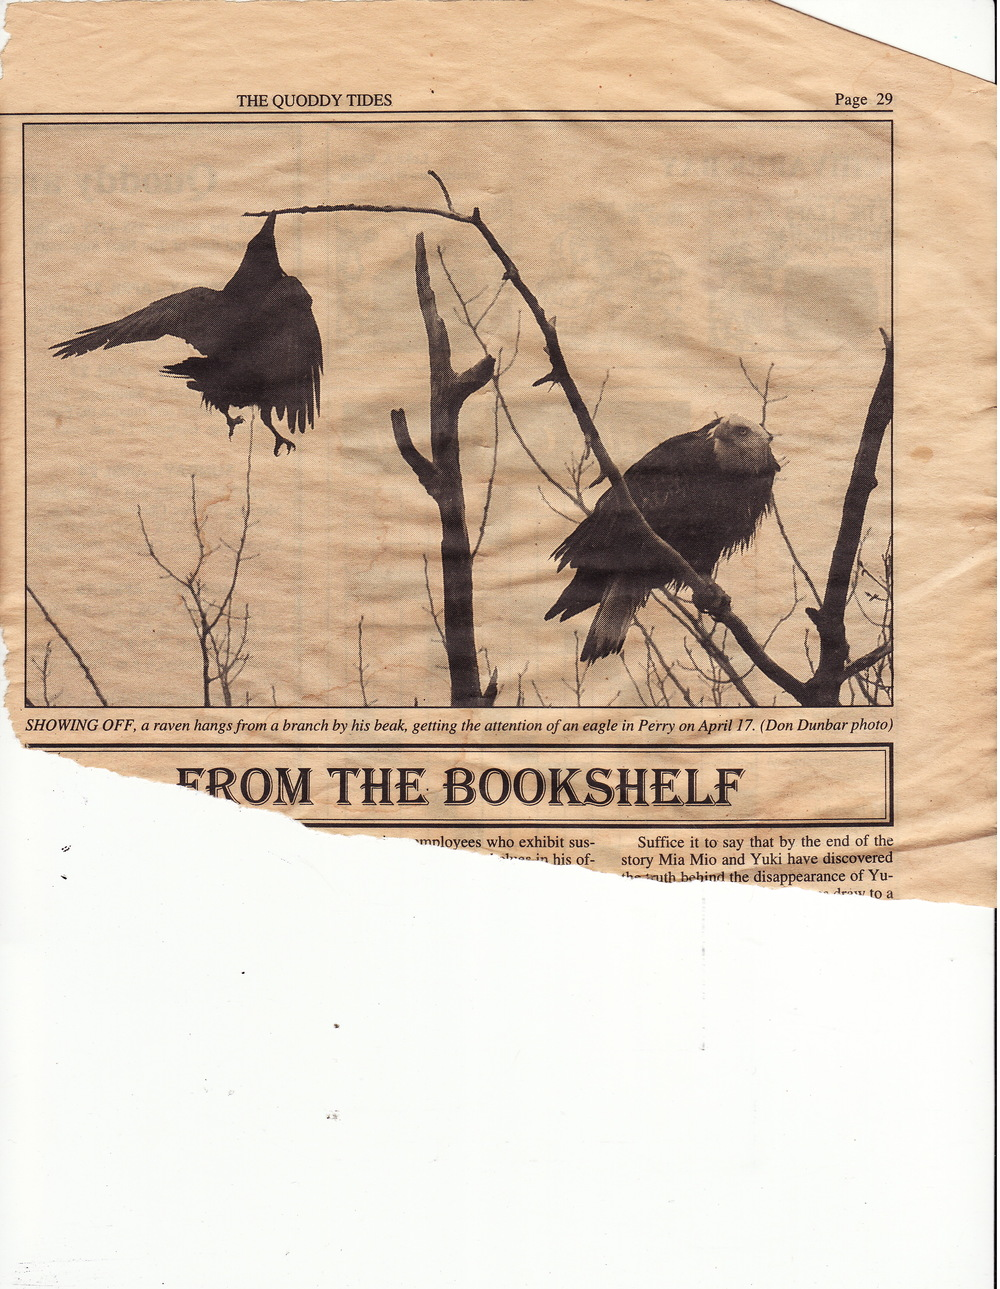 John saved this clipping from an old copy of a Maine newspaper, The Quoddy Times. As the caption notes, the raven seems to be trying to get the eagle to fly.